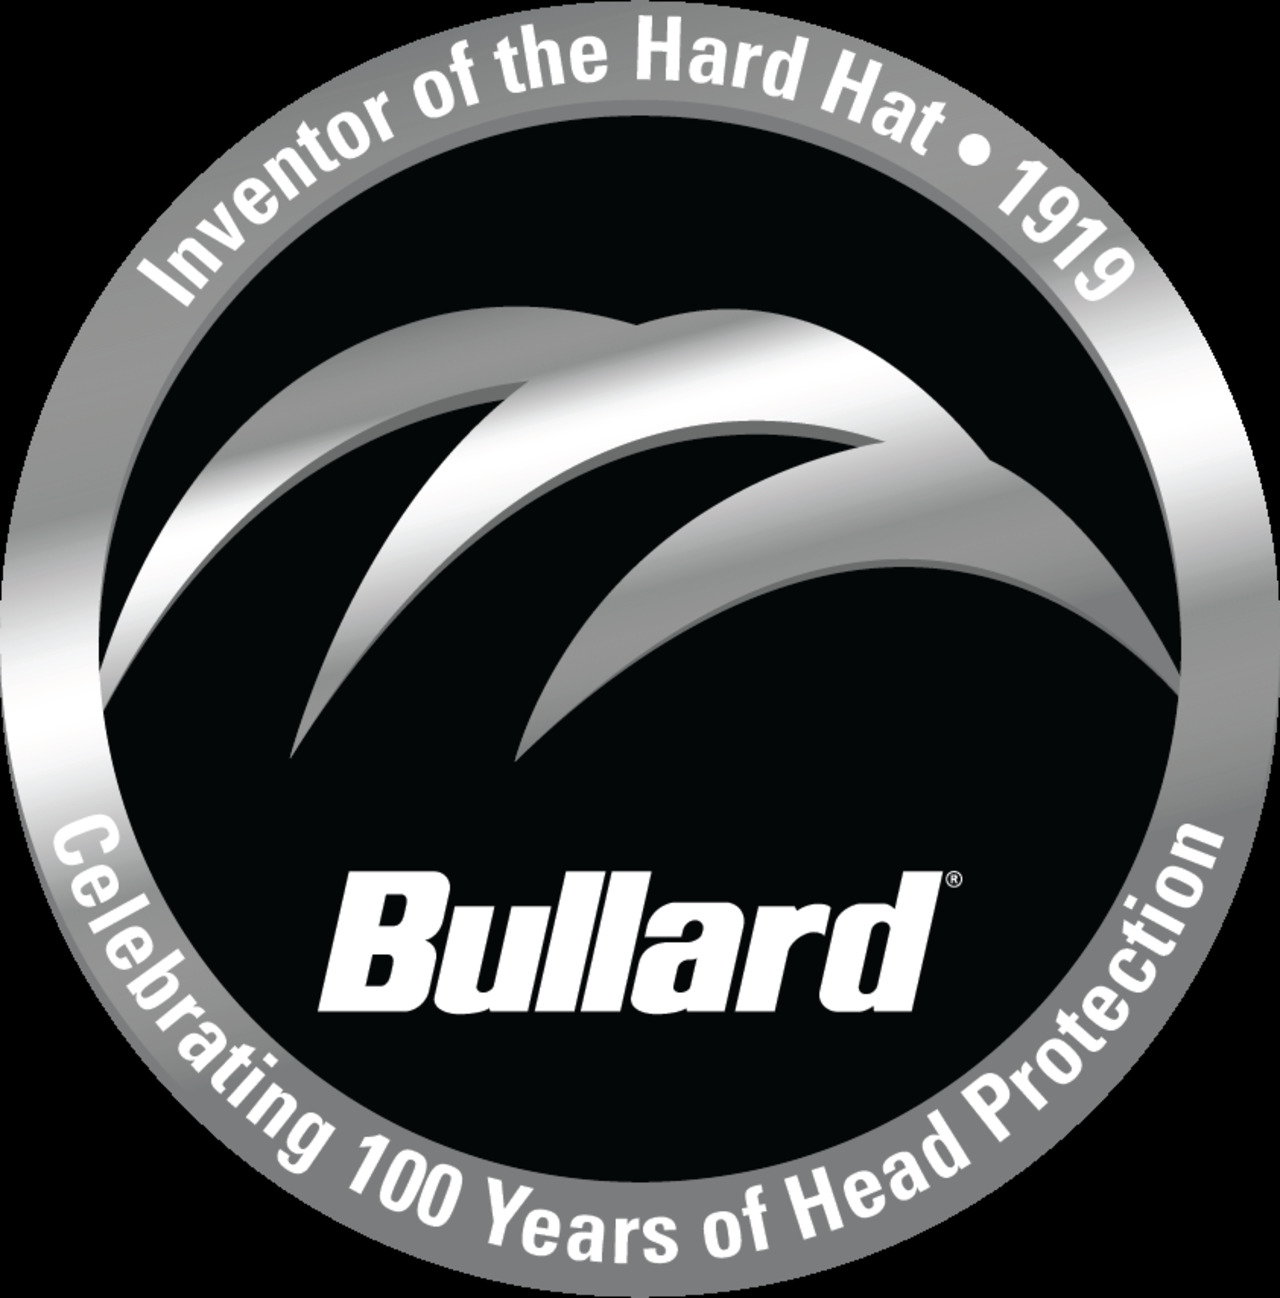 Hard Hat Inventor Bullard Donates to Firefighter Cancer